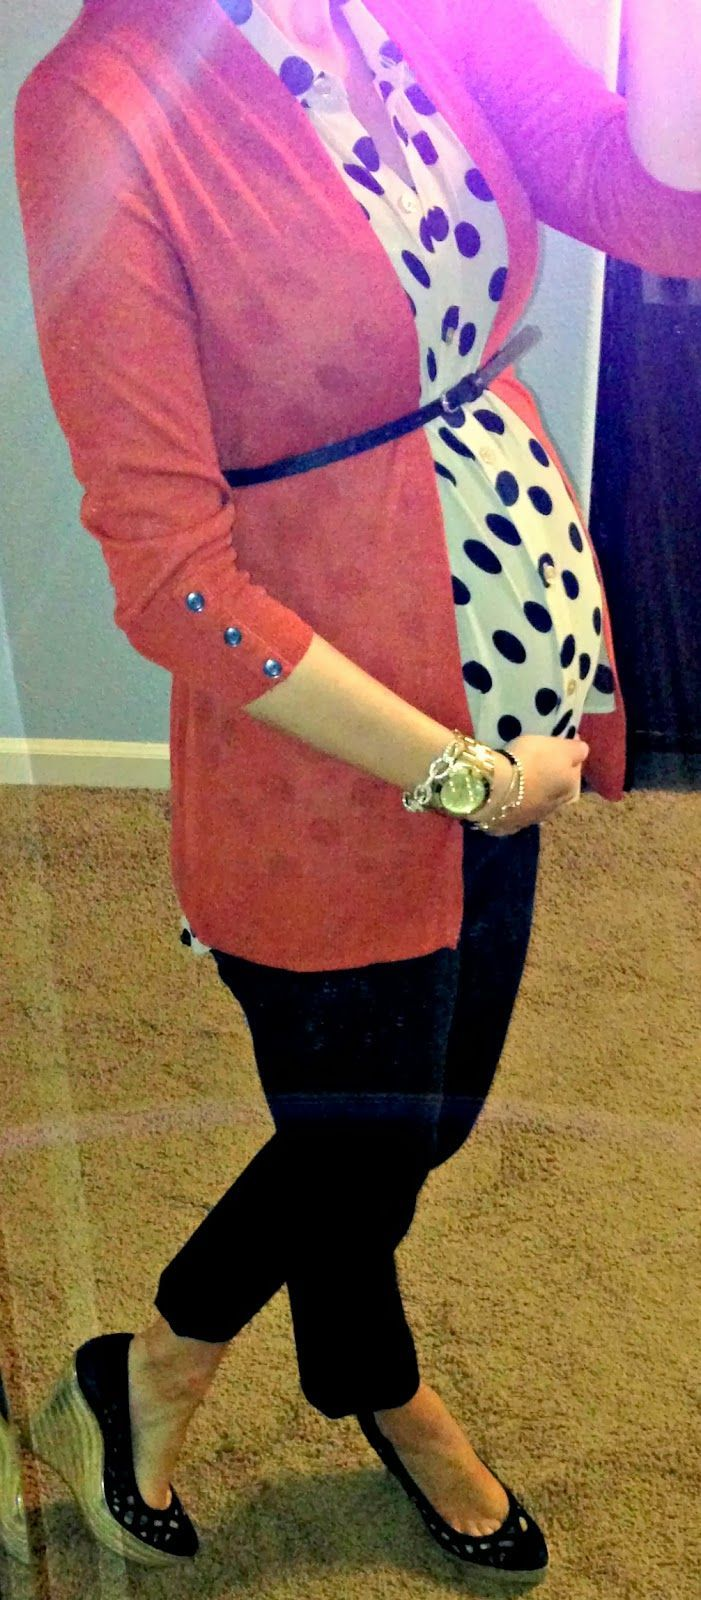 Katie's Closet, maternity fashion, maternity style, pregnancy fashion, pregnancy style---for the next one :)